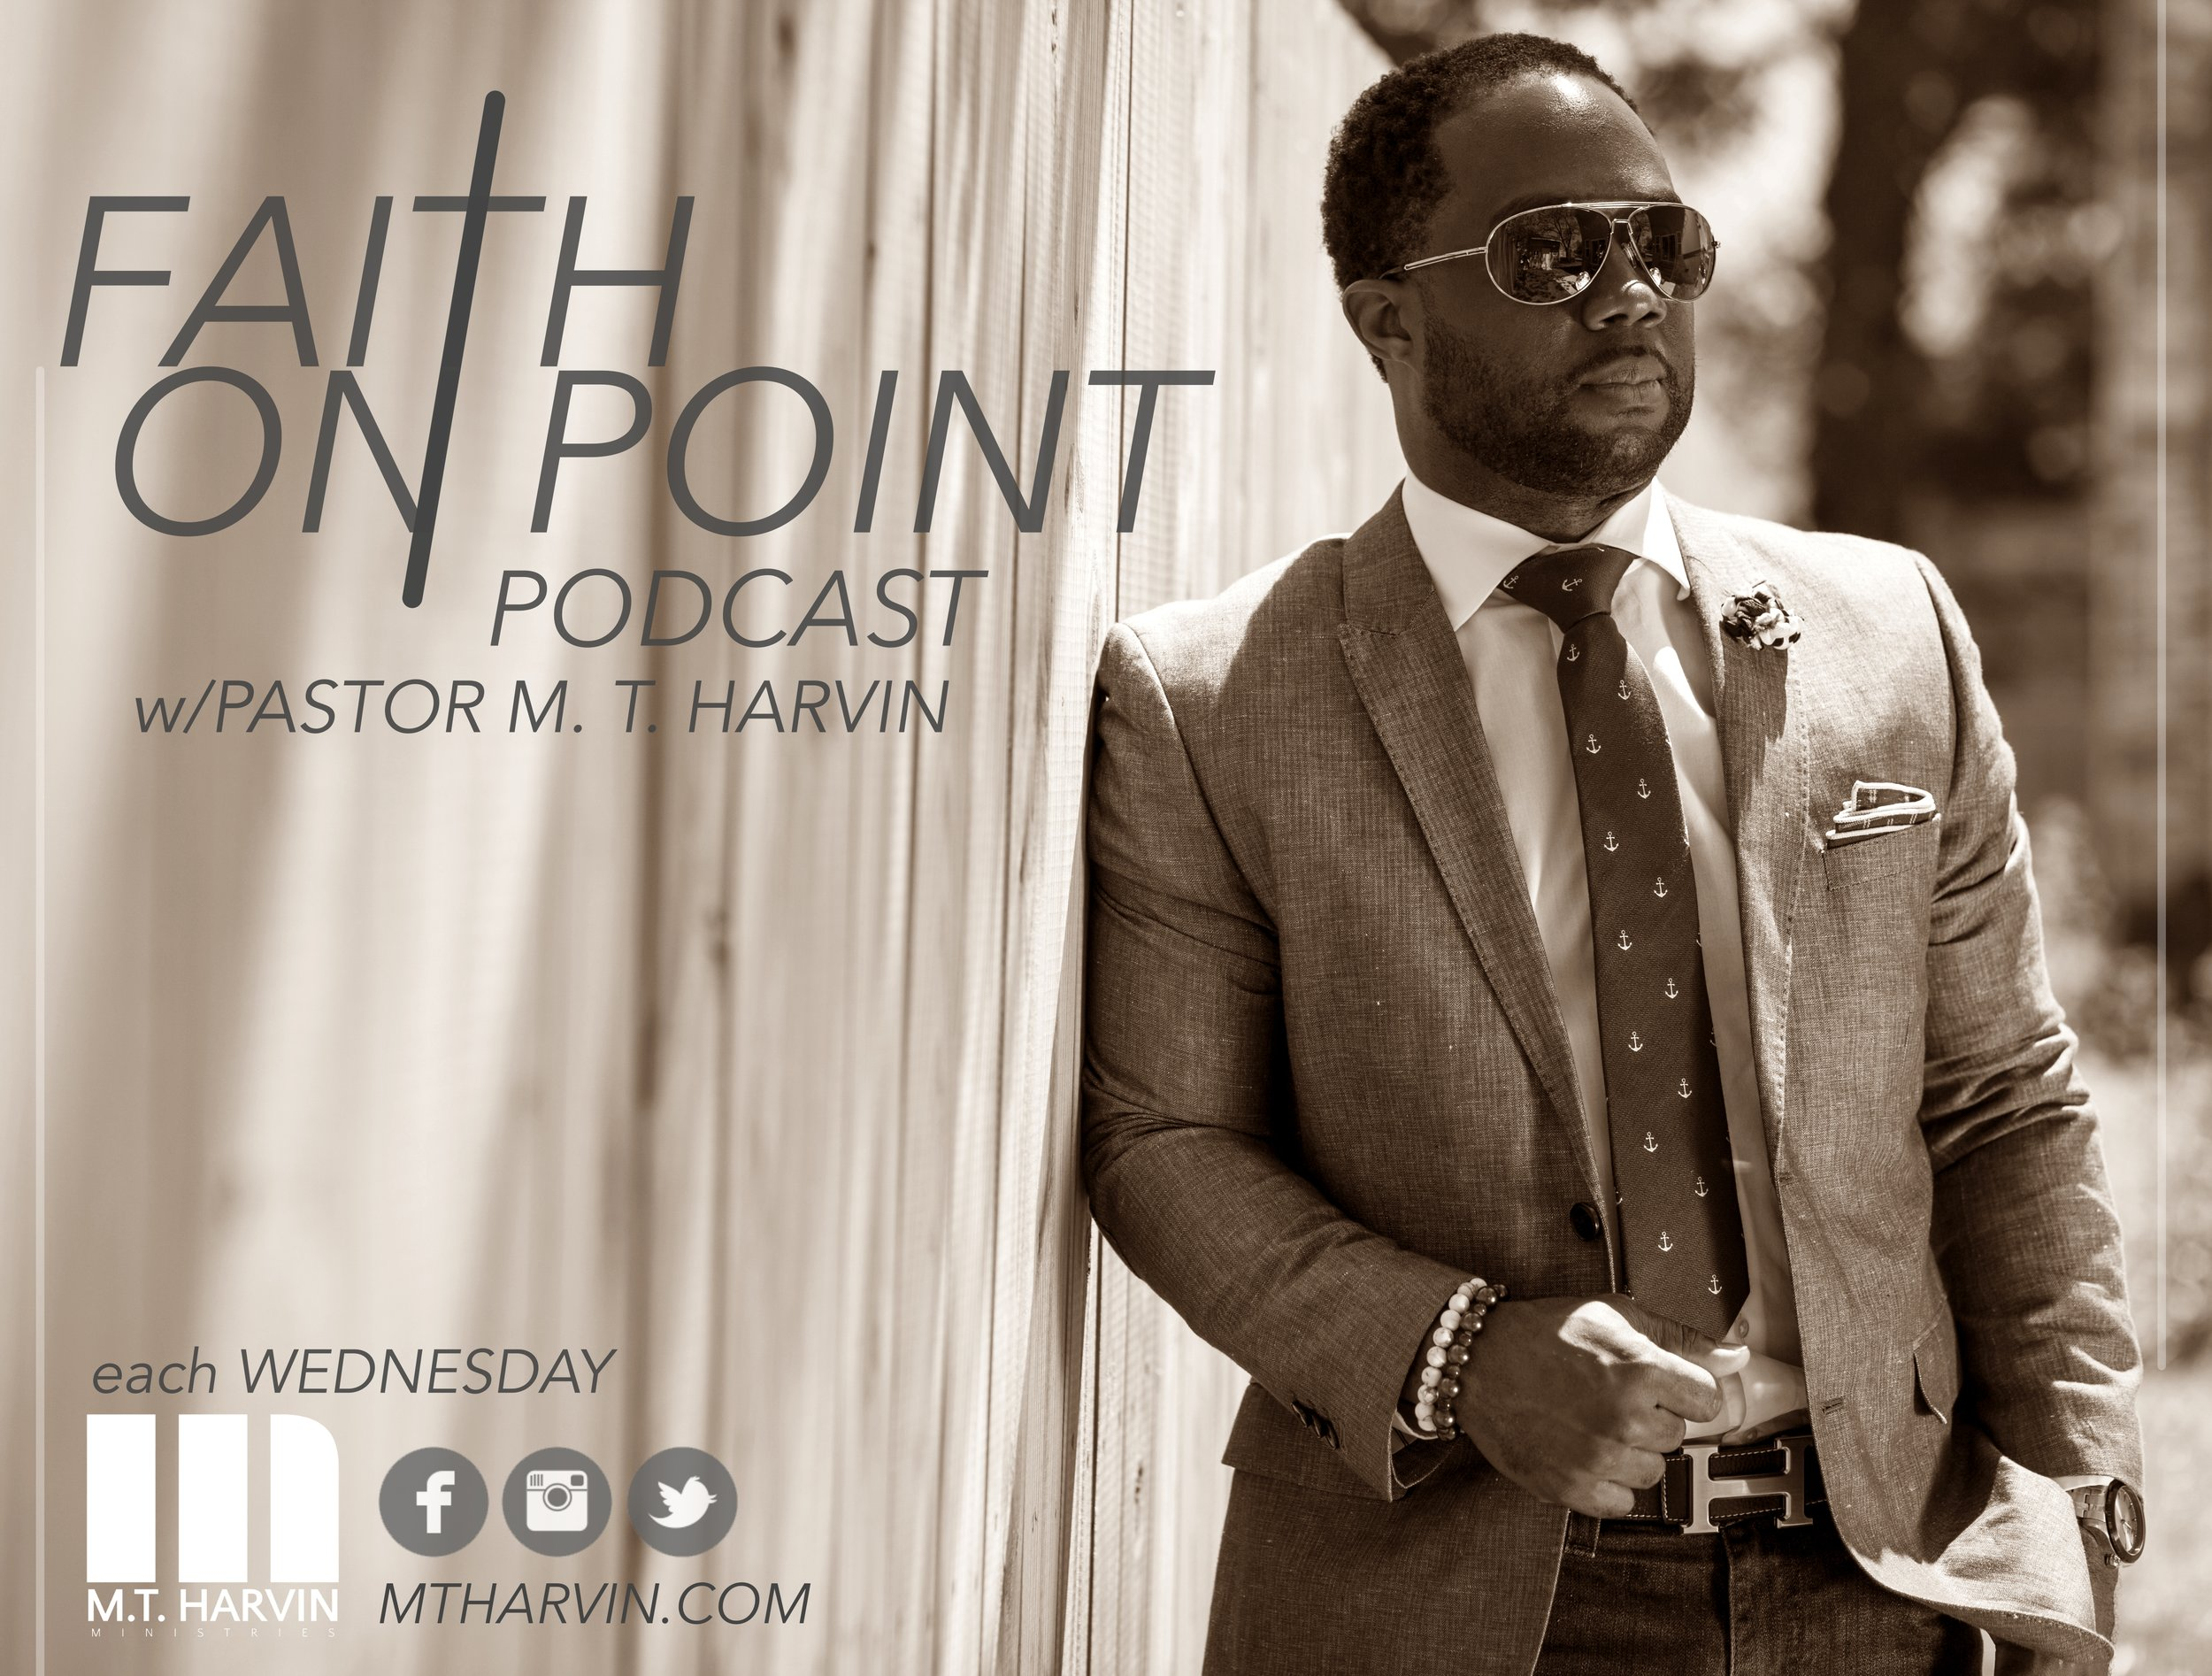 Subscribe to my podcast on iTunes: FAITH ON POINT w/Bishop M. T. Harvin  http://isalutesound.com/mhpodcast/feed/podcast